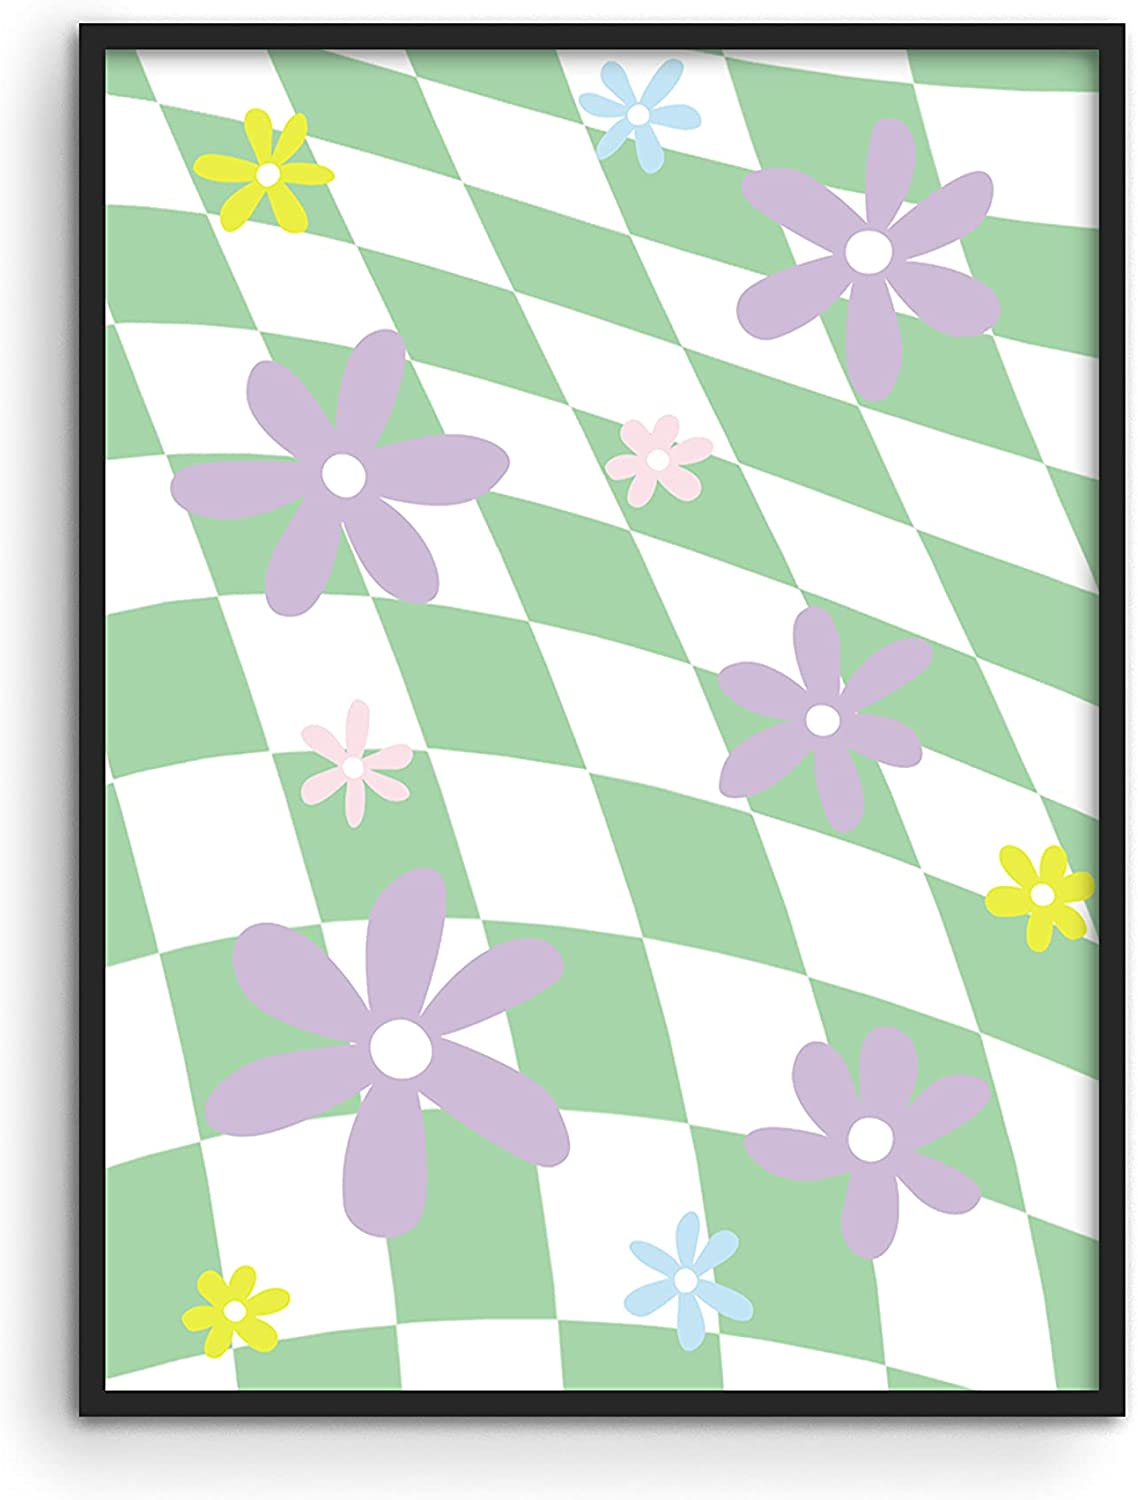 Haus and Hues Danish Pastel Aesthetic - Green Wall Art Danish Posters Cute Wall Decor Floral Wall Decor Floral Danish Pastel Room Decor Aesthetic Danish Home Decor Flower Posters UNFRAMED - 12